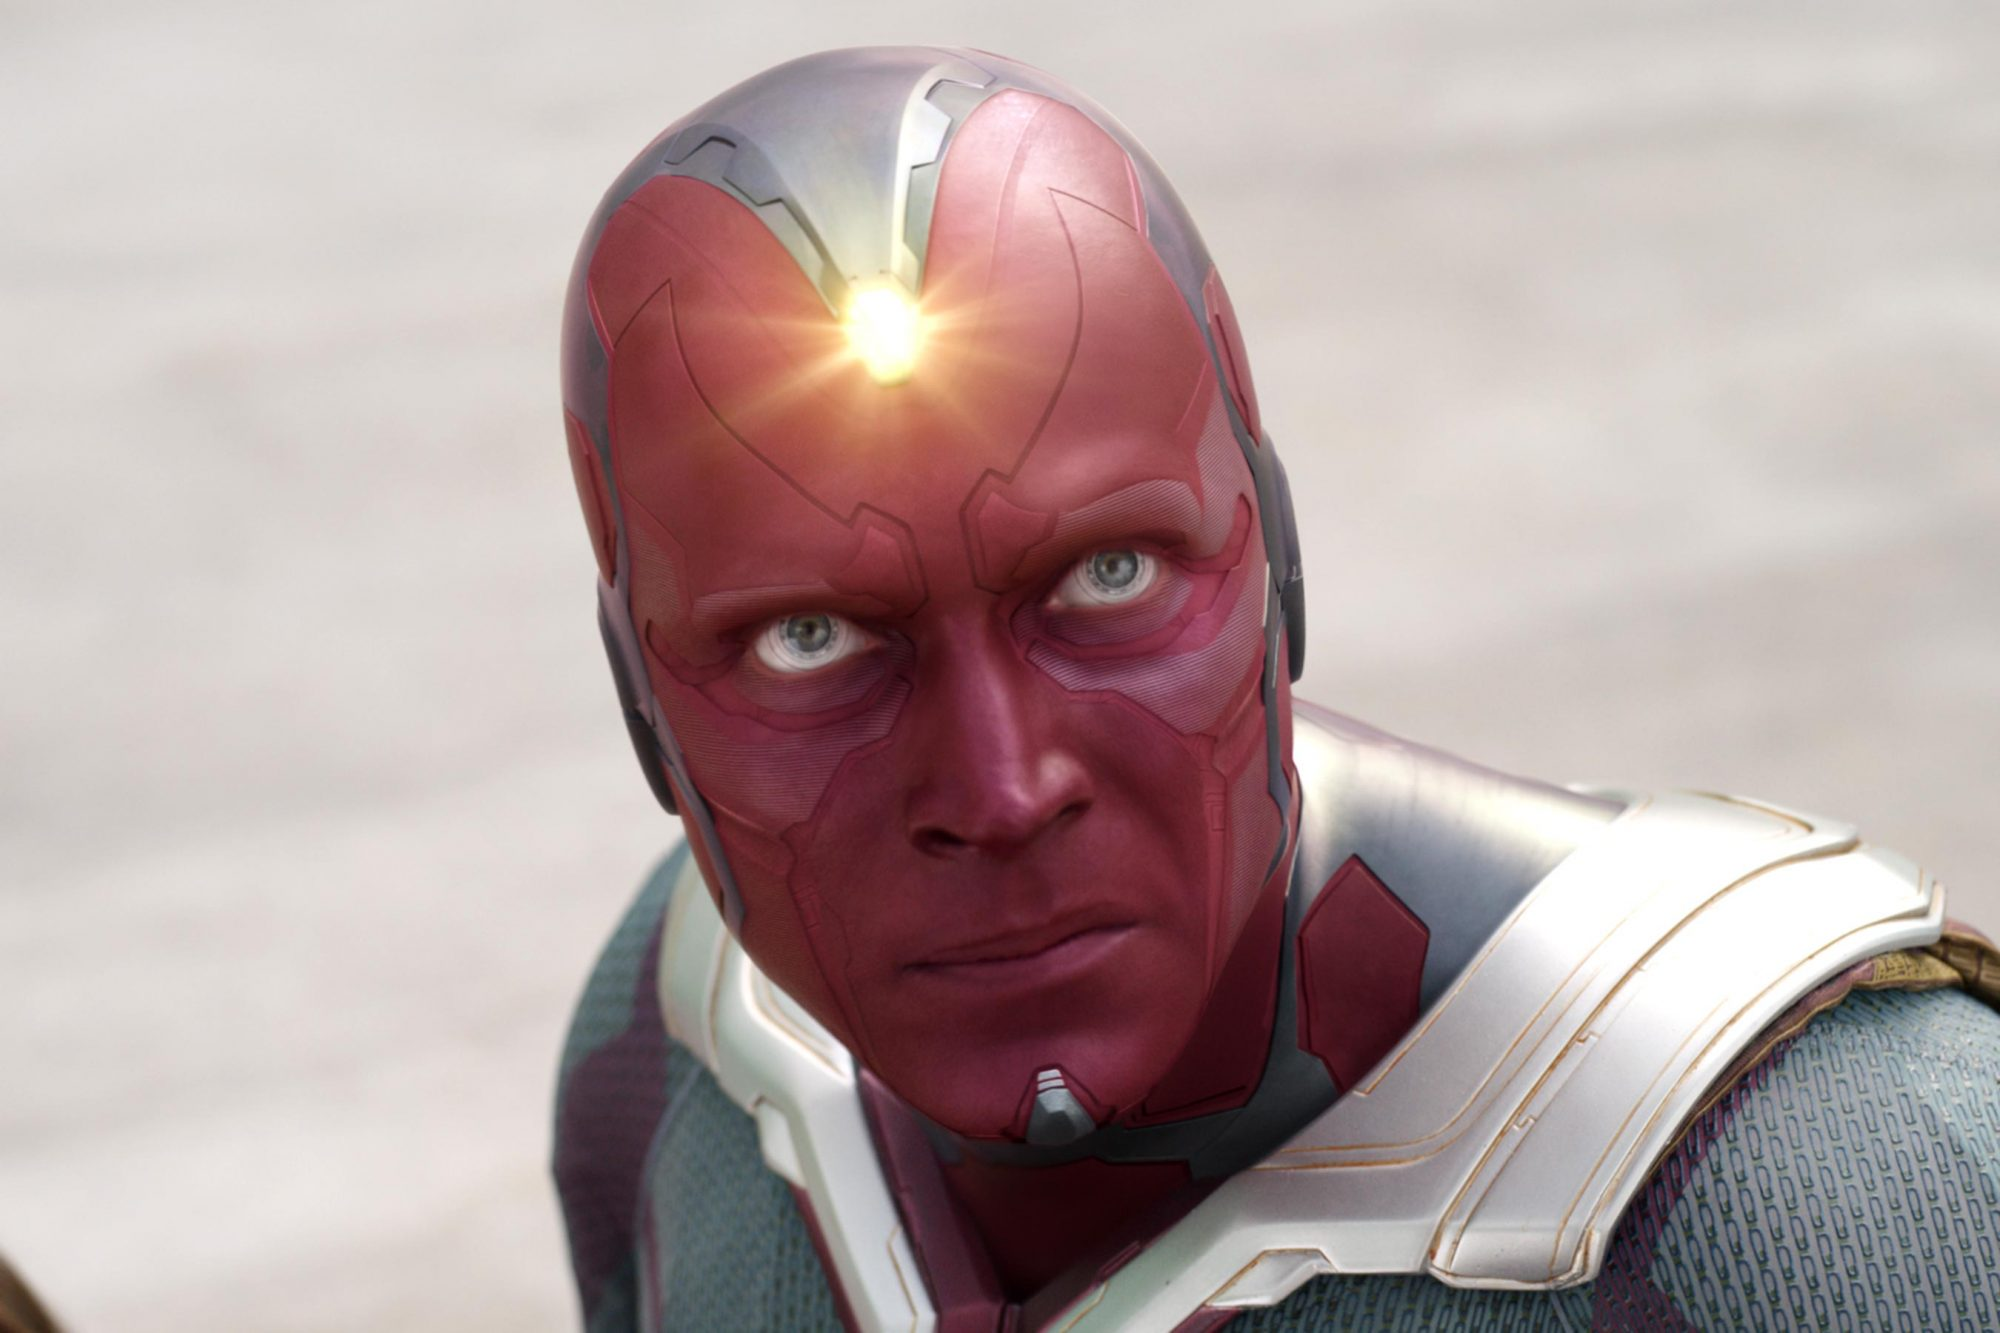 Marvel's Captain America: Civil War (2016)Vision (Paul Bettany)